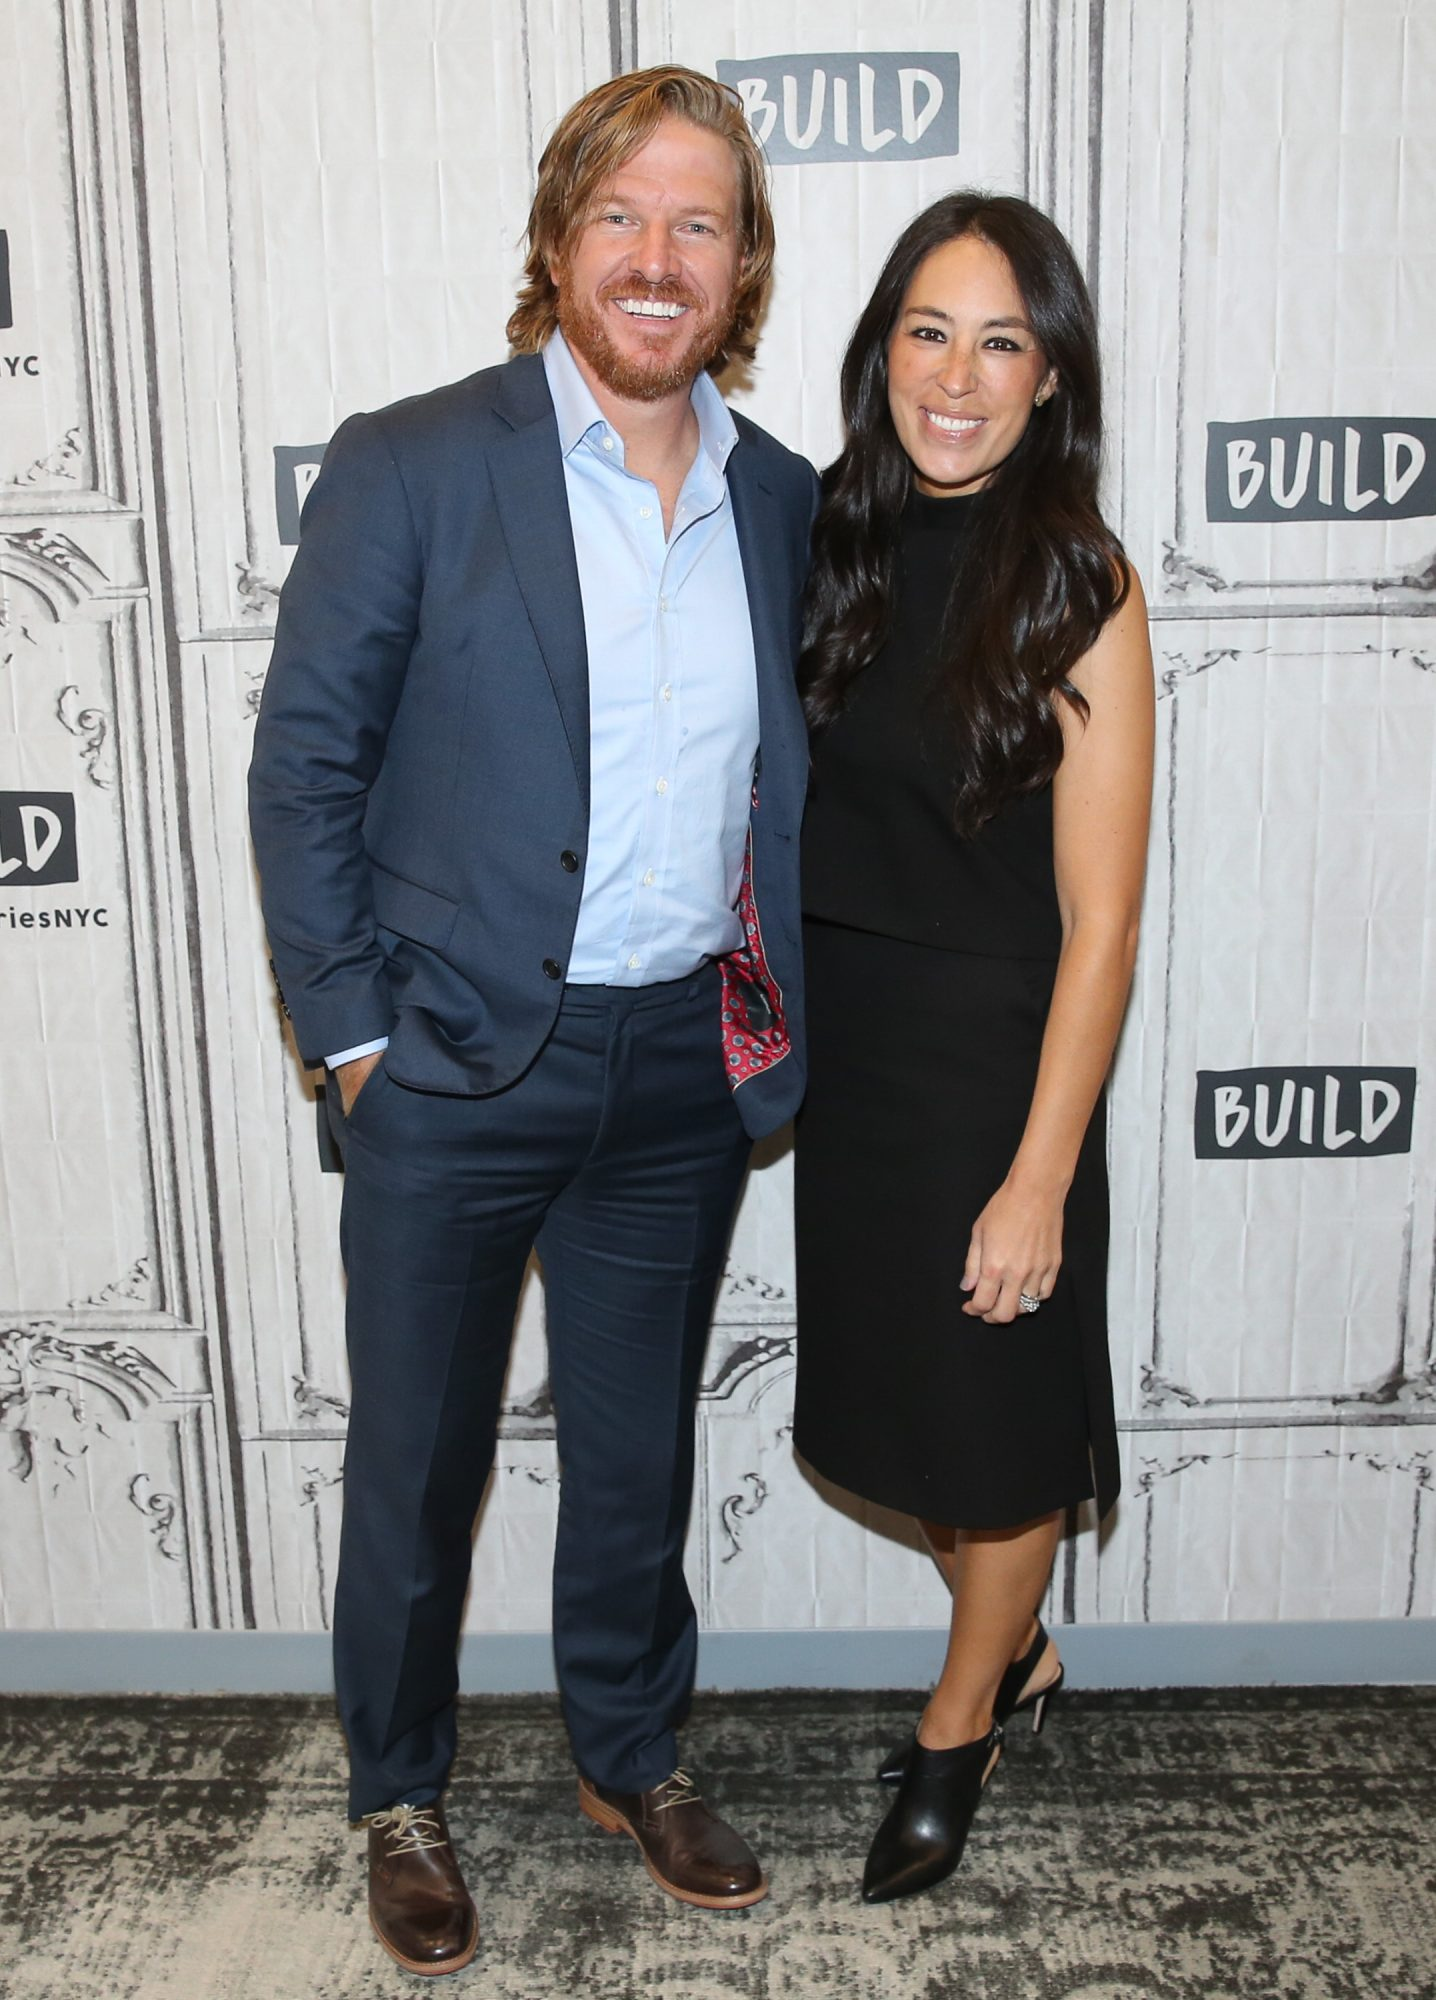 It'll Be a Boy for Chip and Joanna Gaines